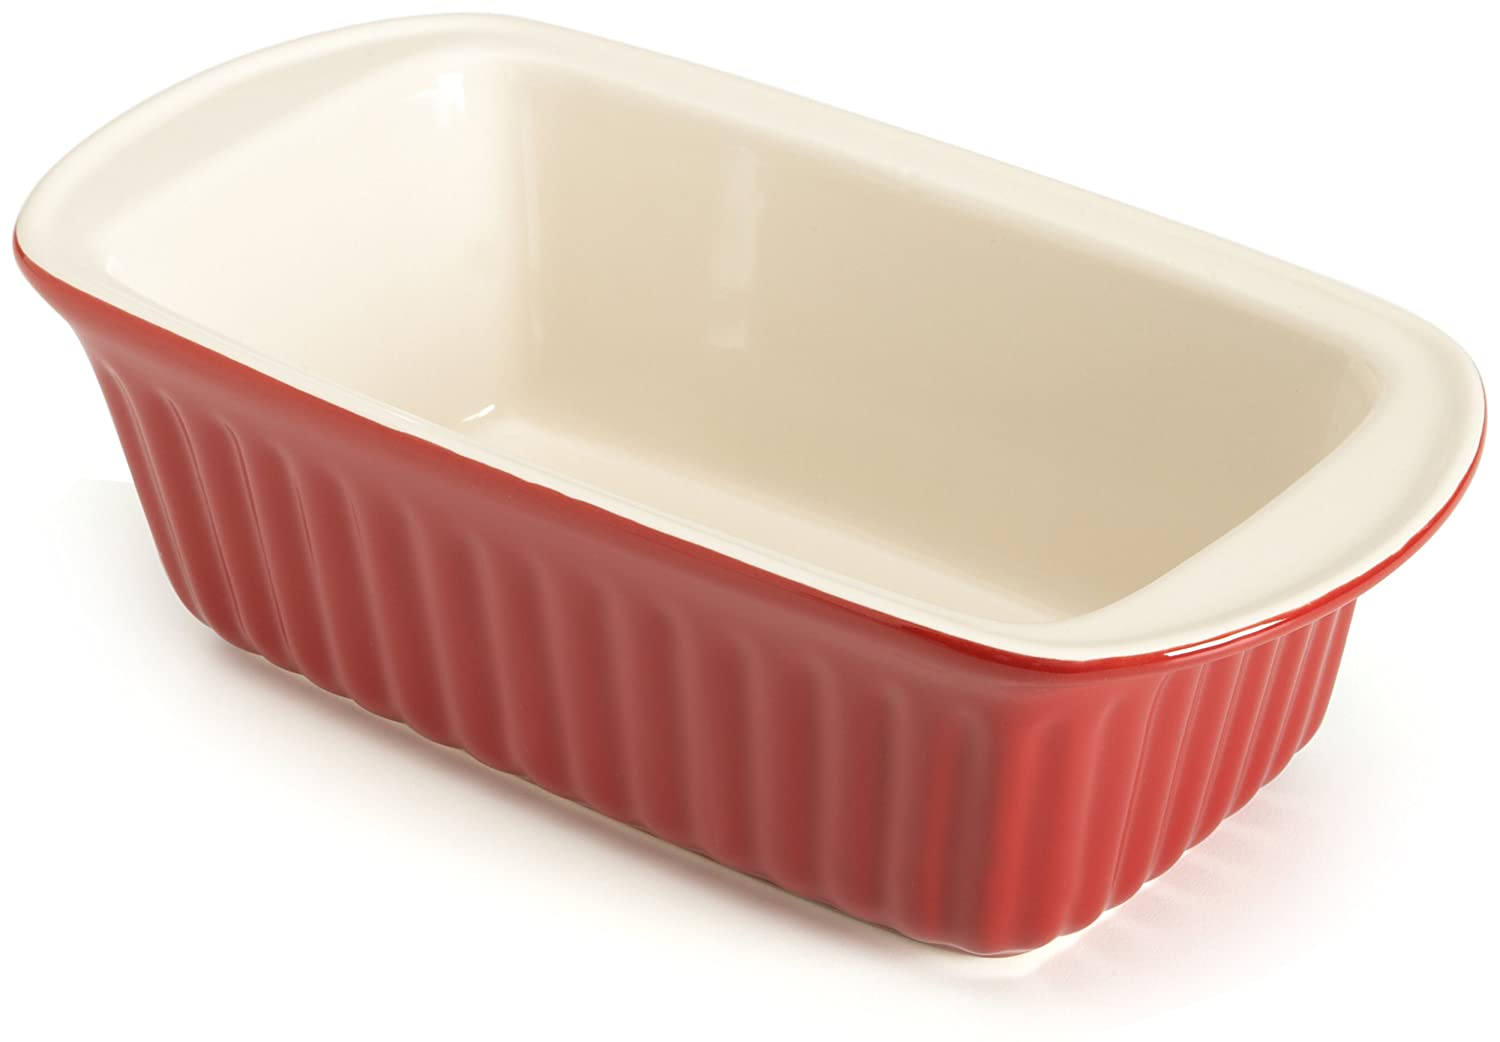 Good Cook 9 Inch Ceramic Loaf Dish, Red 04426